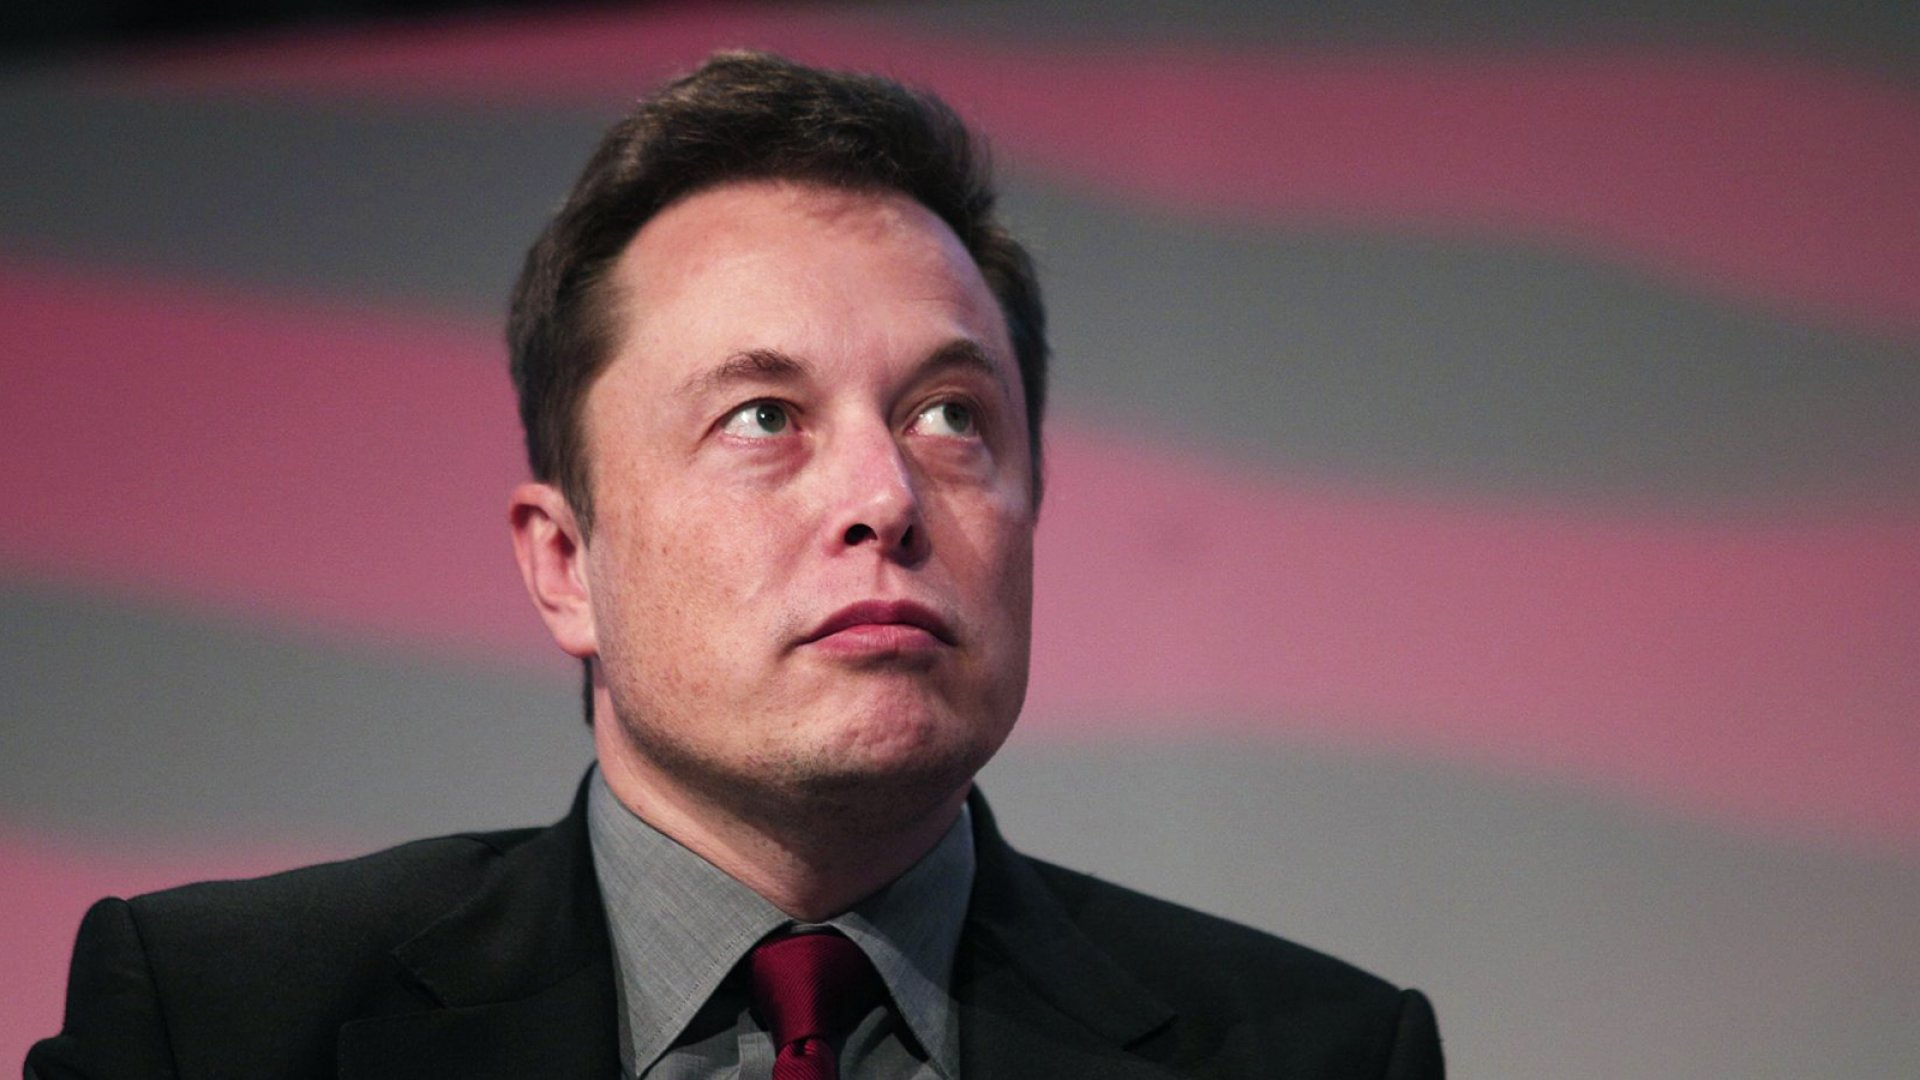 Elon Musk Threatens to Build a Moat Filled With Candy to Keep Warren Buffett at Bay